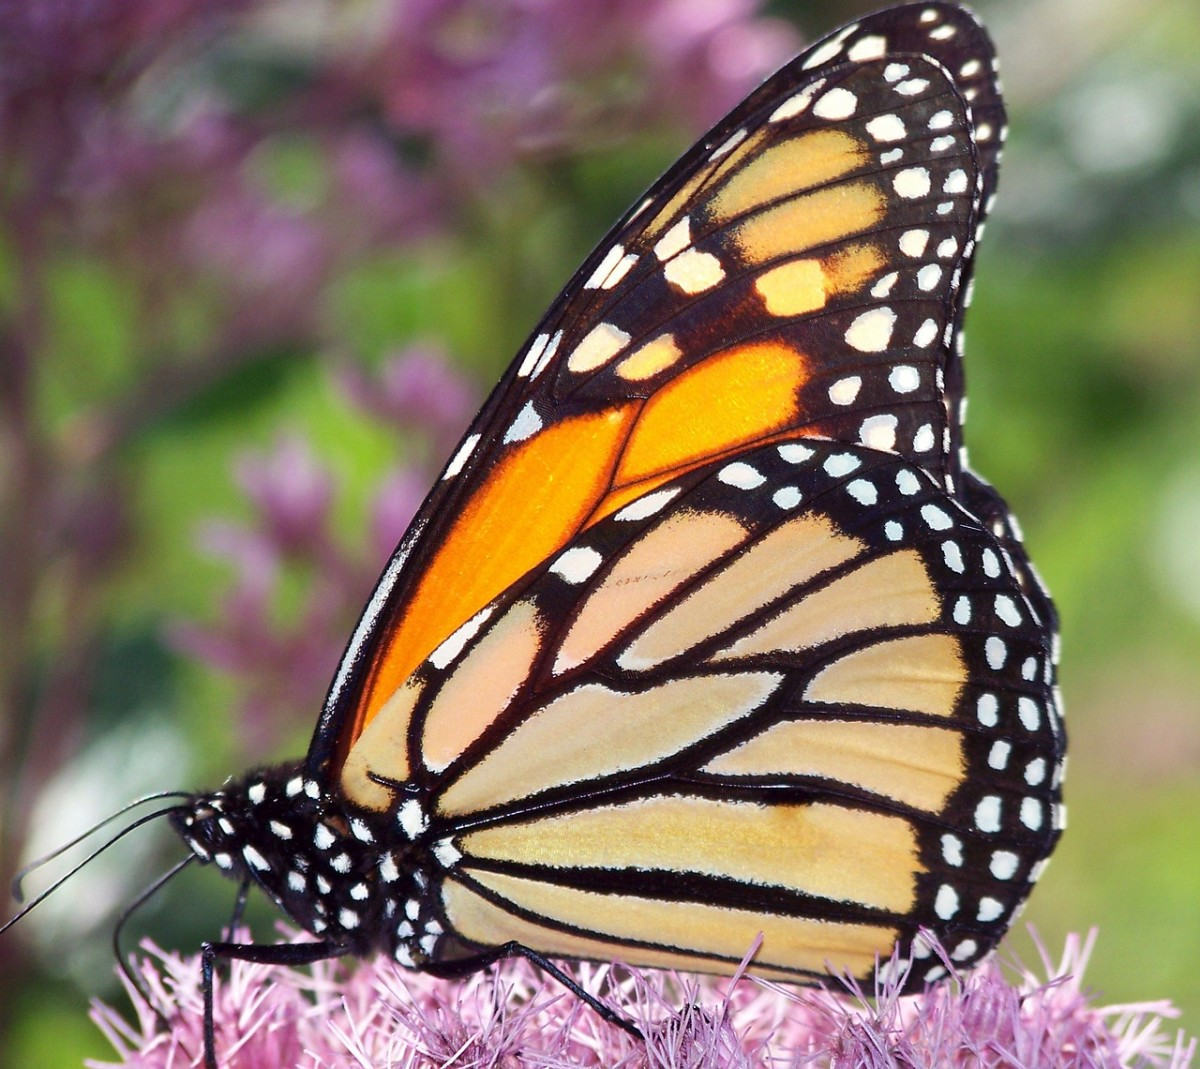 Butterfly Types and Identification Guide to 21 Butterfly Species